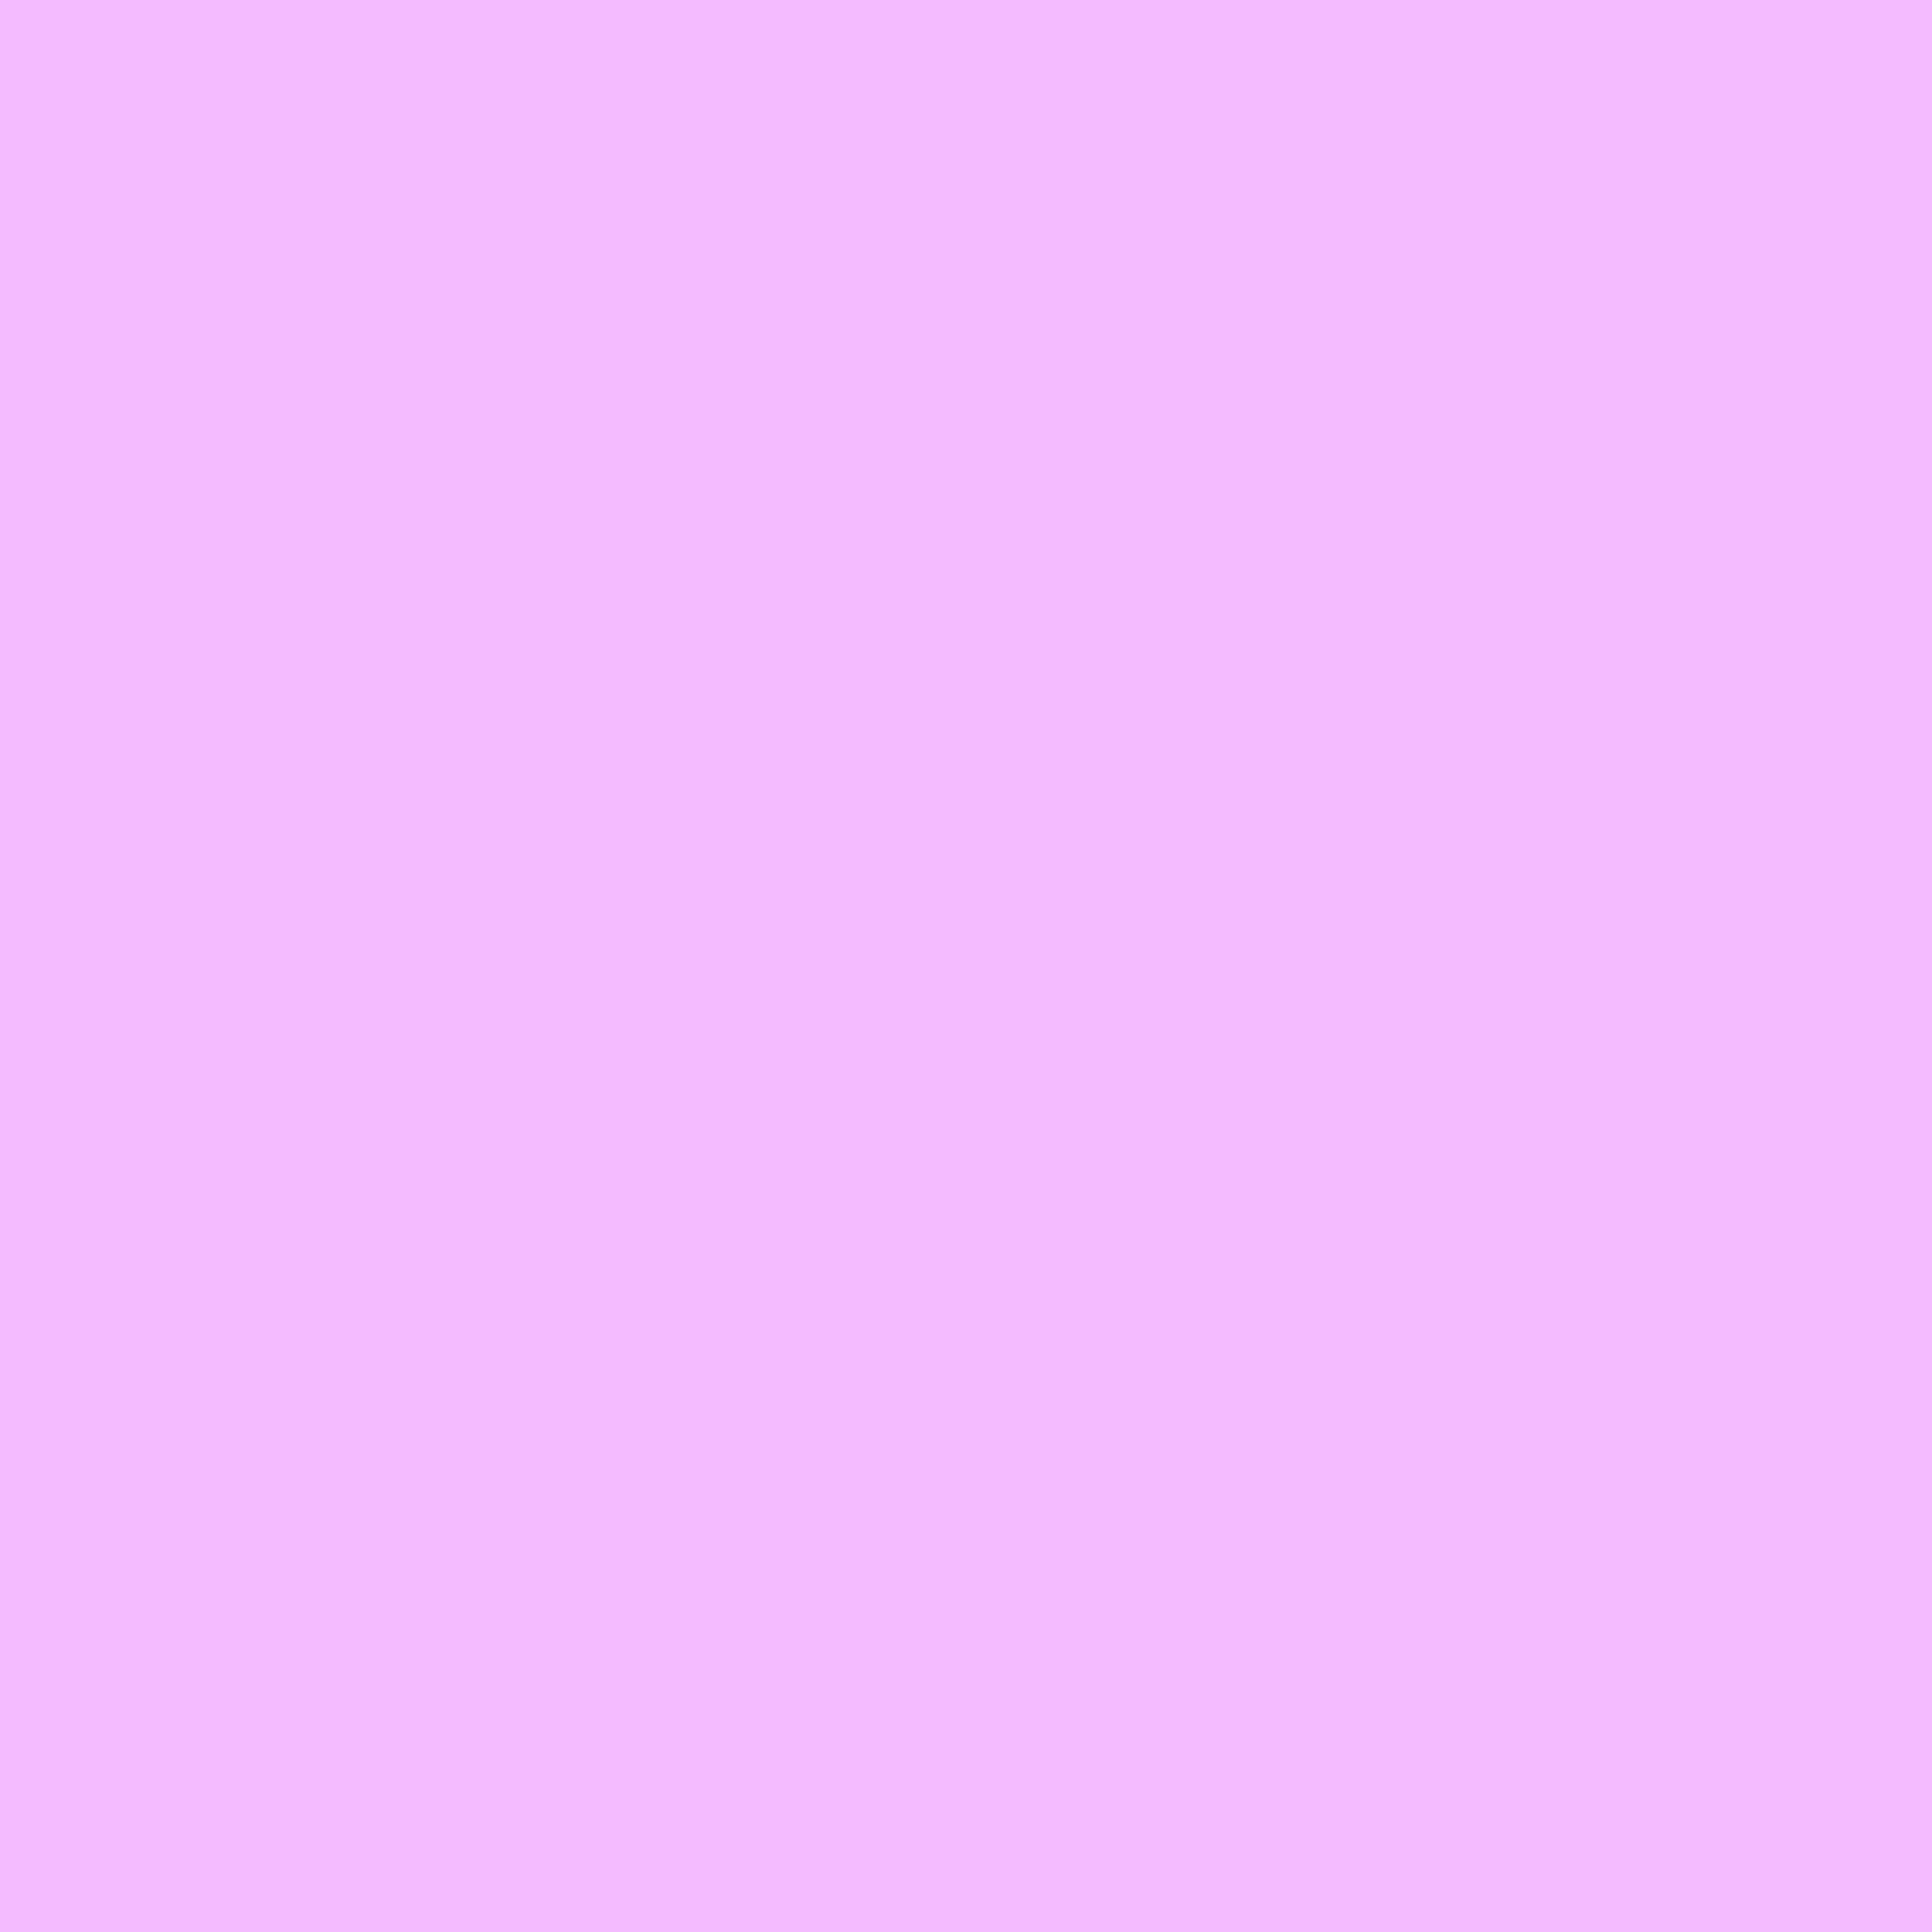 3600x3600 Electric Lavender Solid Color Background